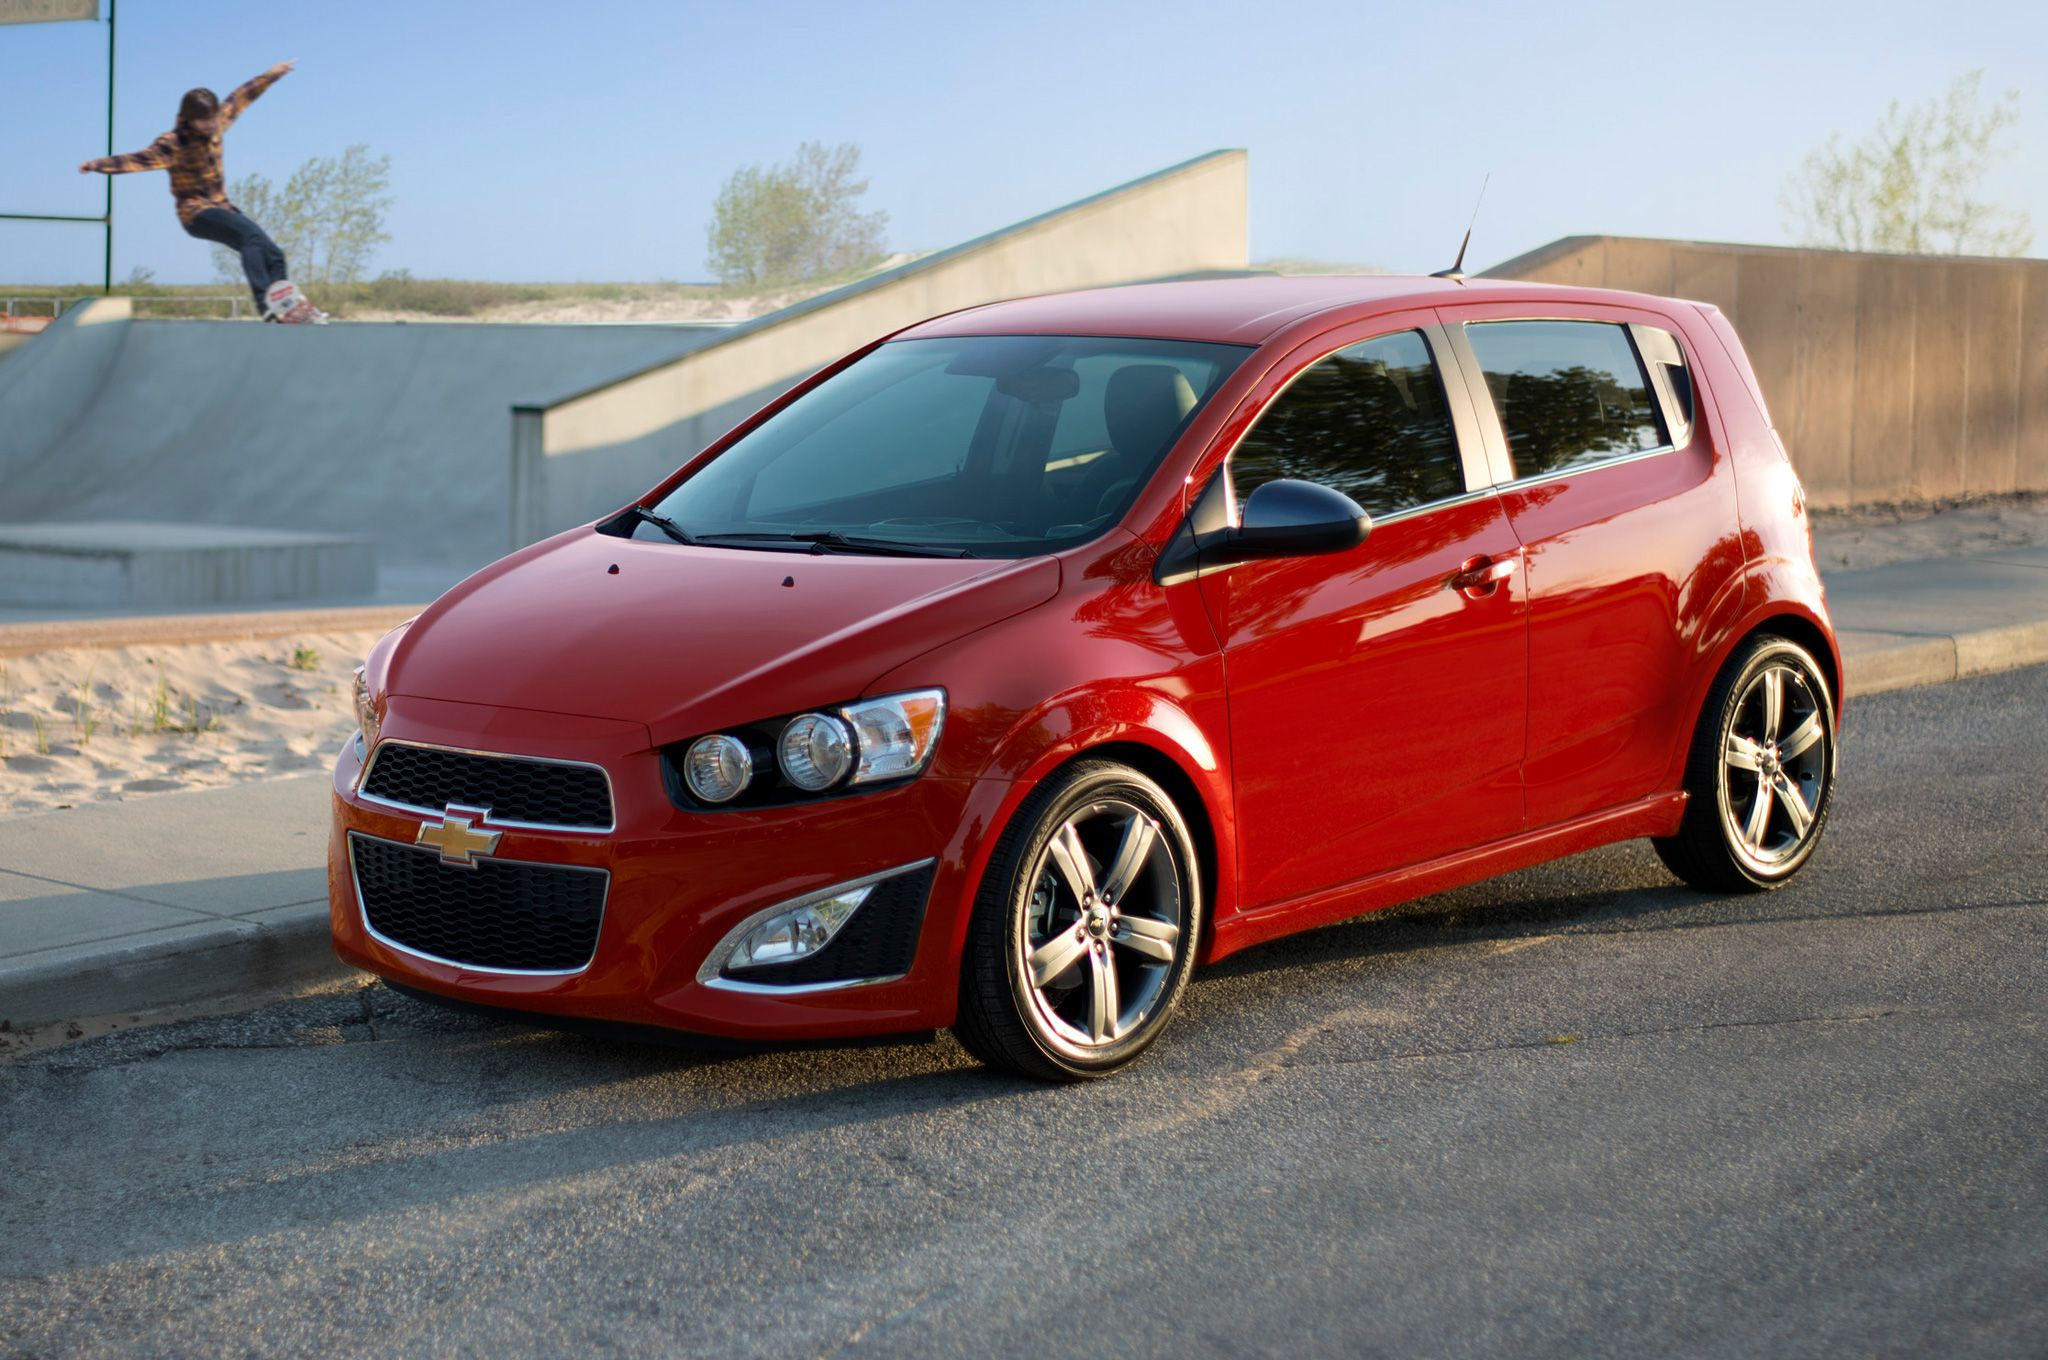 2015 Chevrolet Sonic Release Date Price and Design